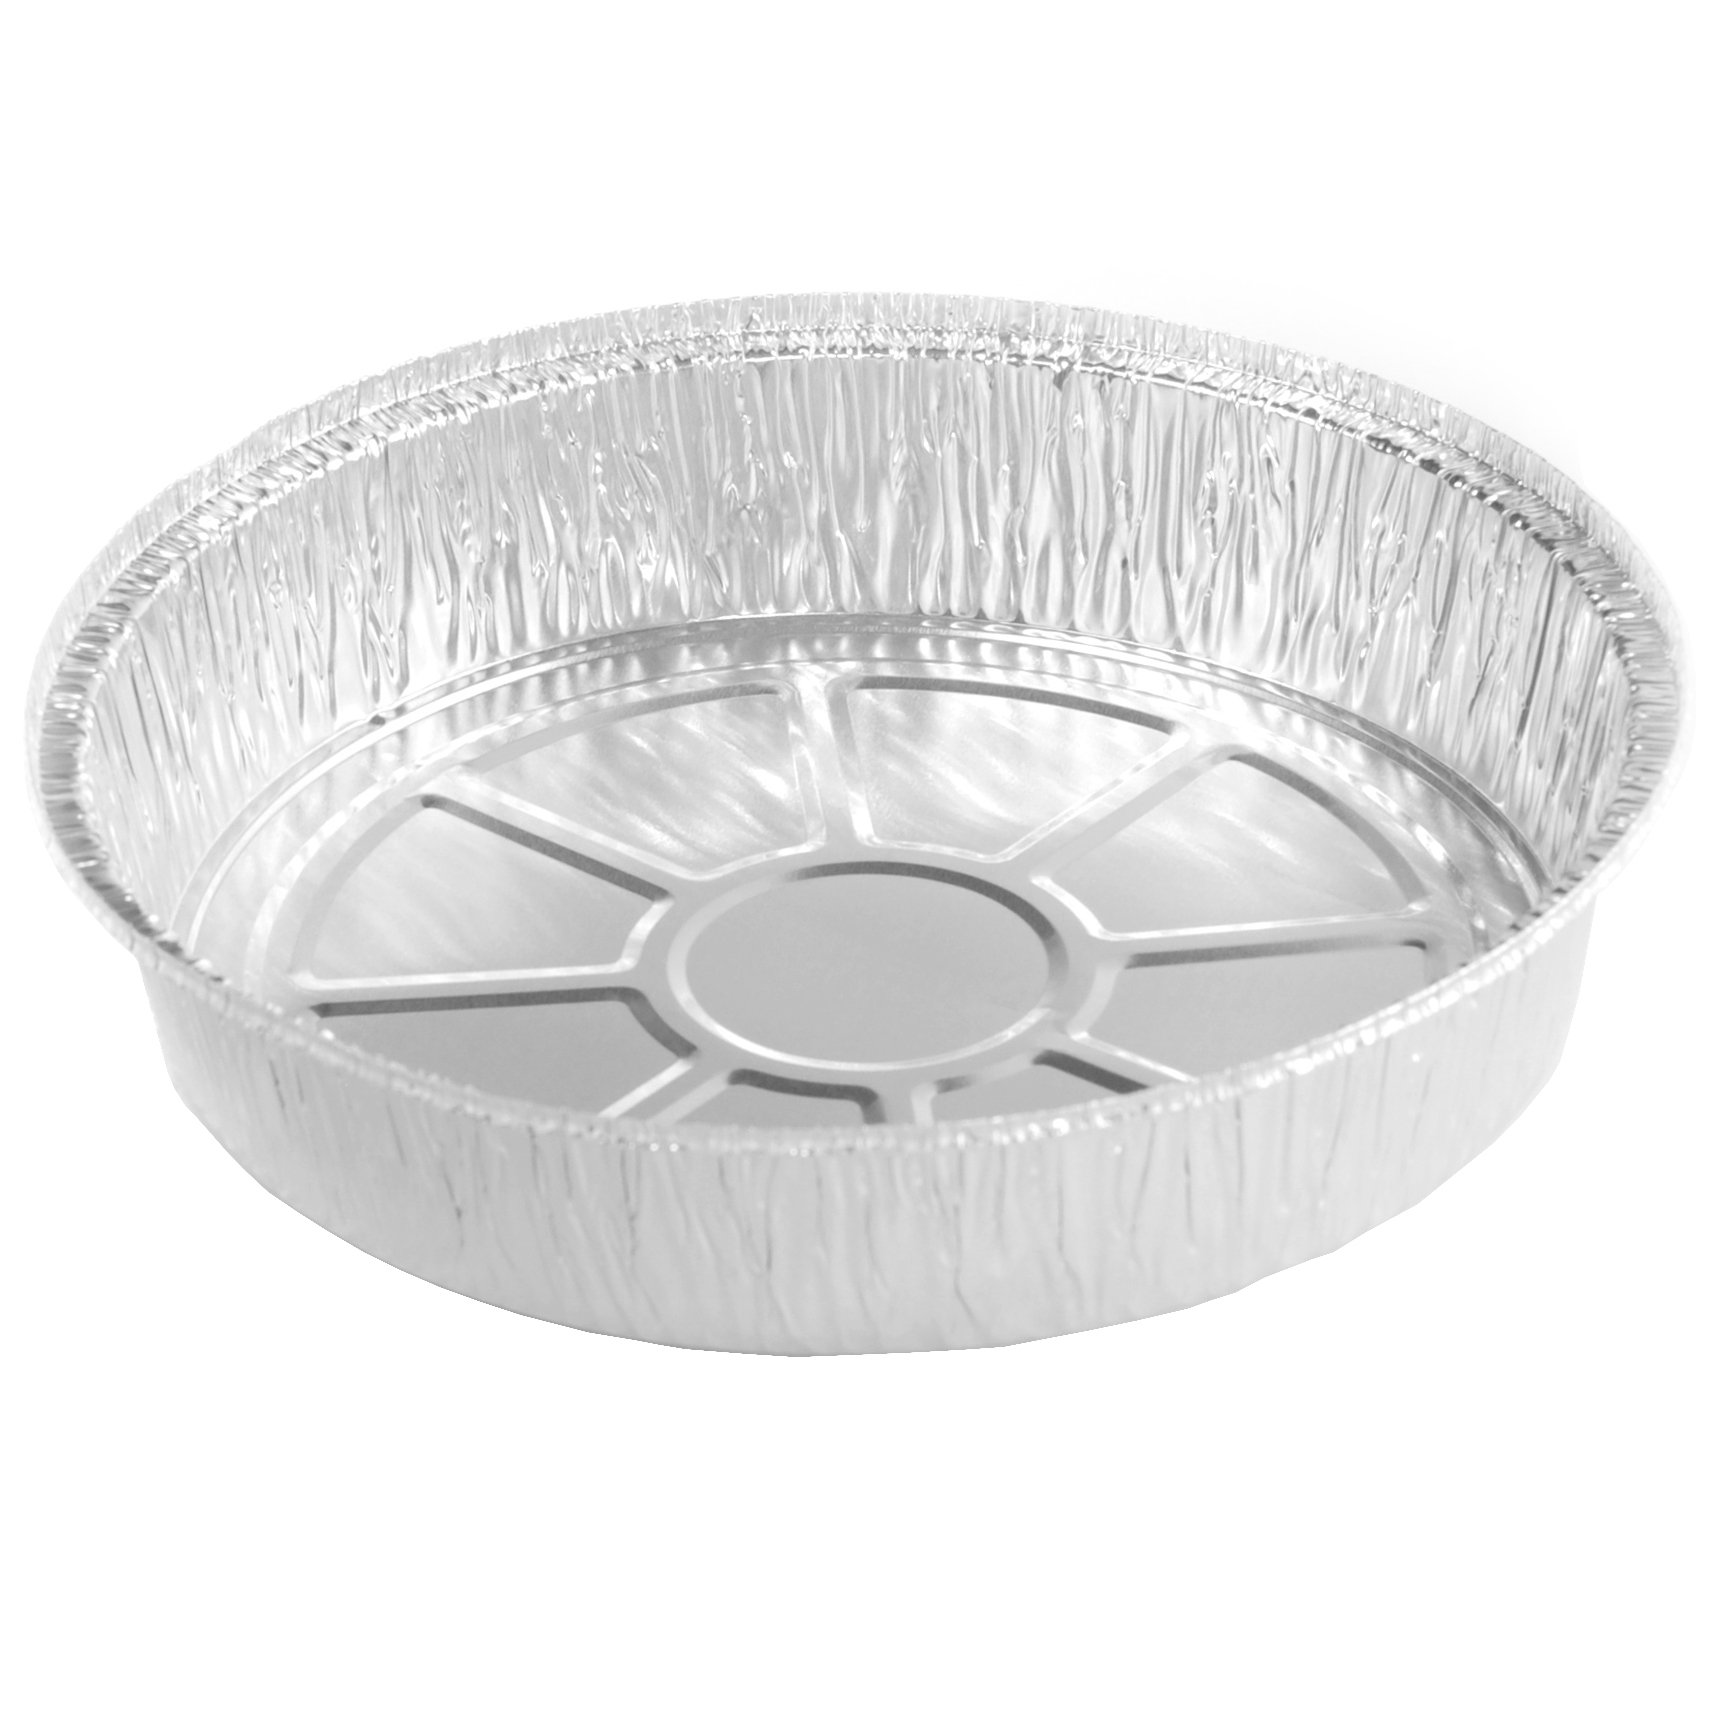 Simply Deliver 9-Inch Round Disposable Take-Out Pan, 30 Gauge Aluminum, 500-Count by Simply Deliver (Image #1)